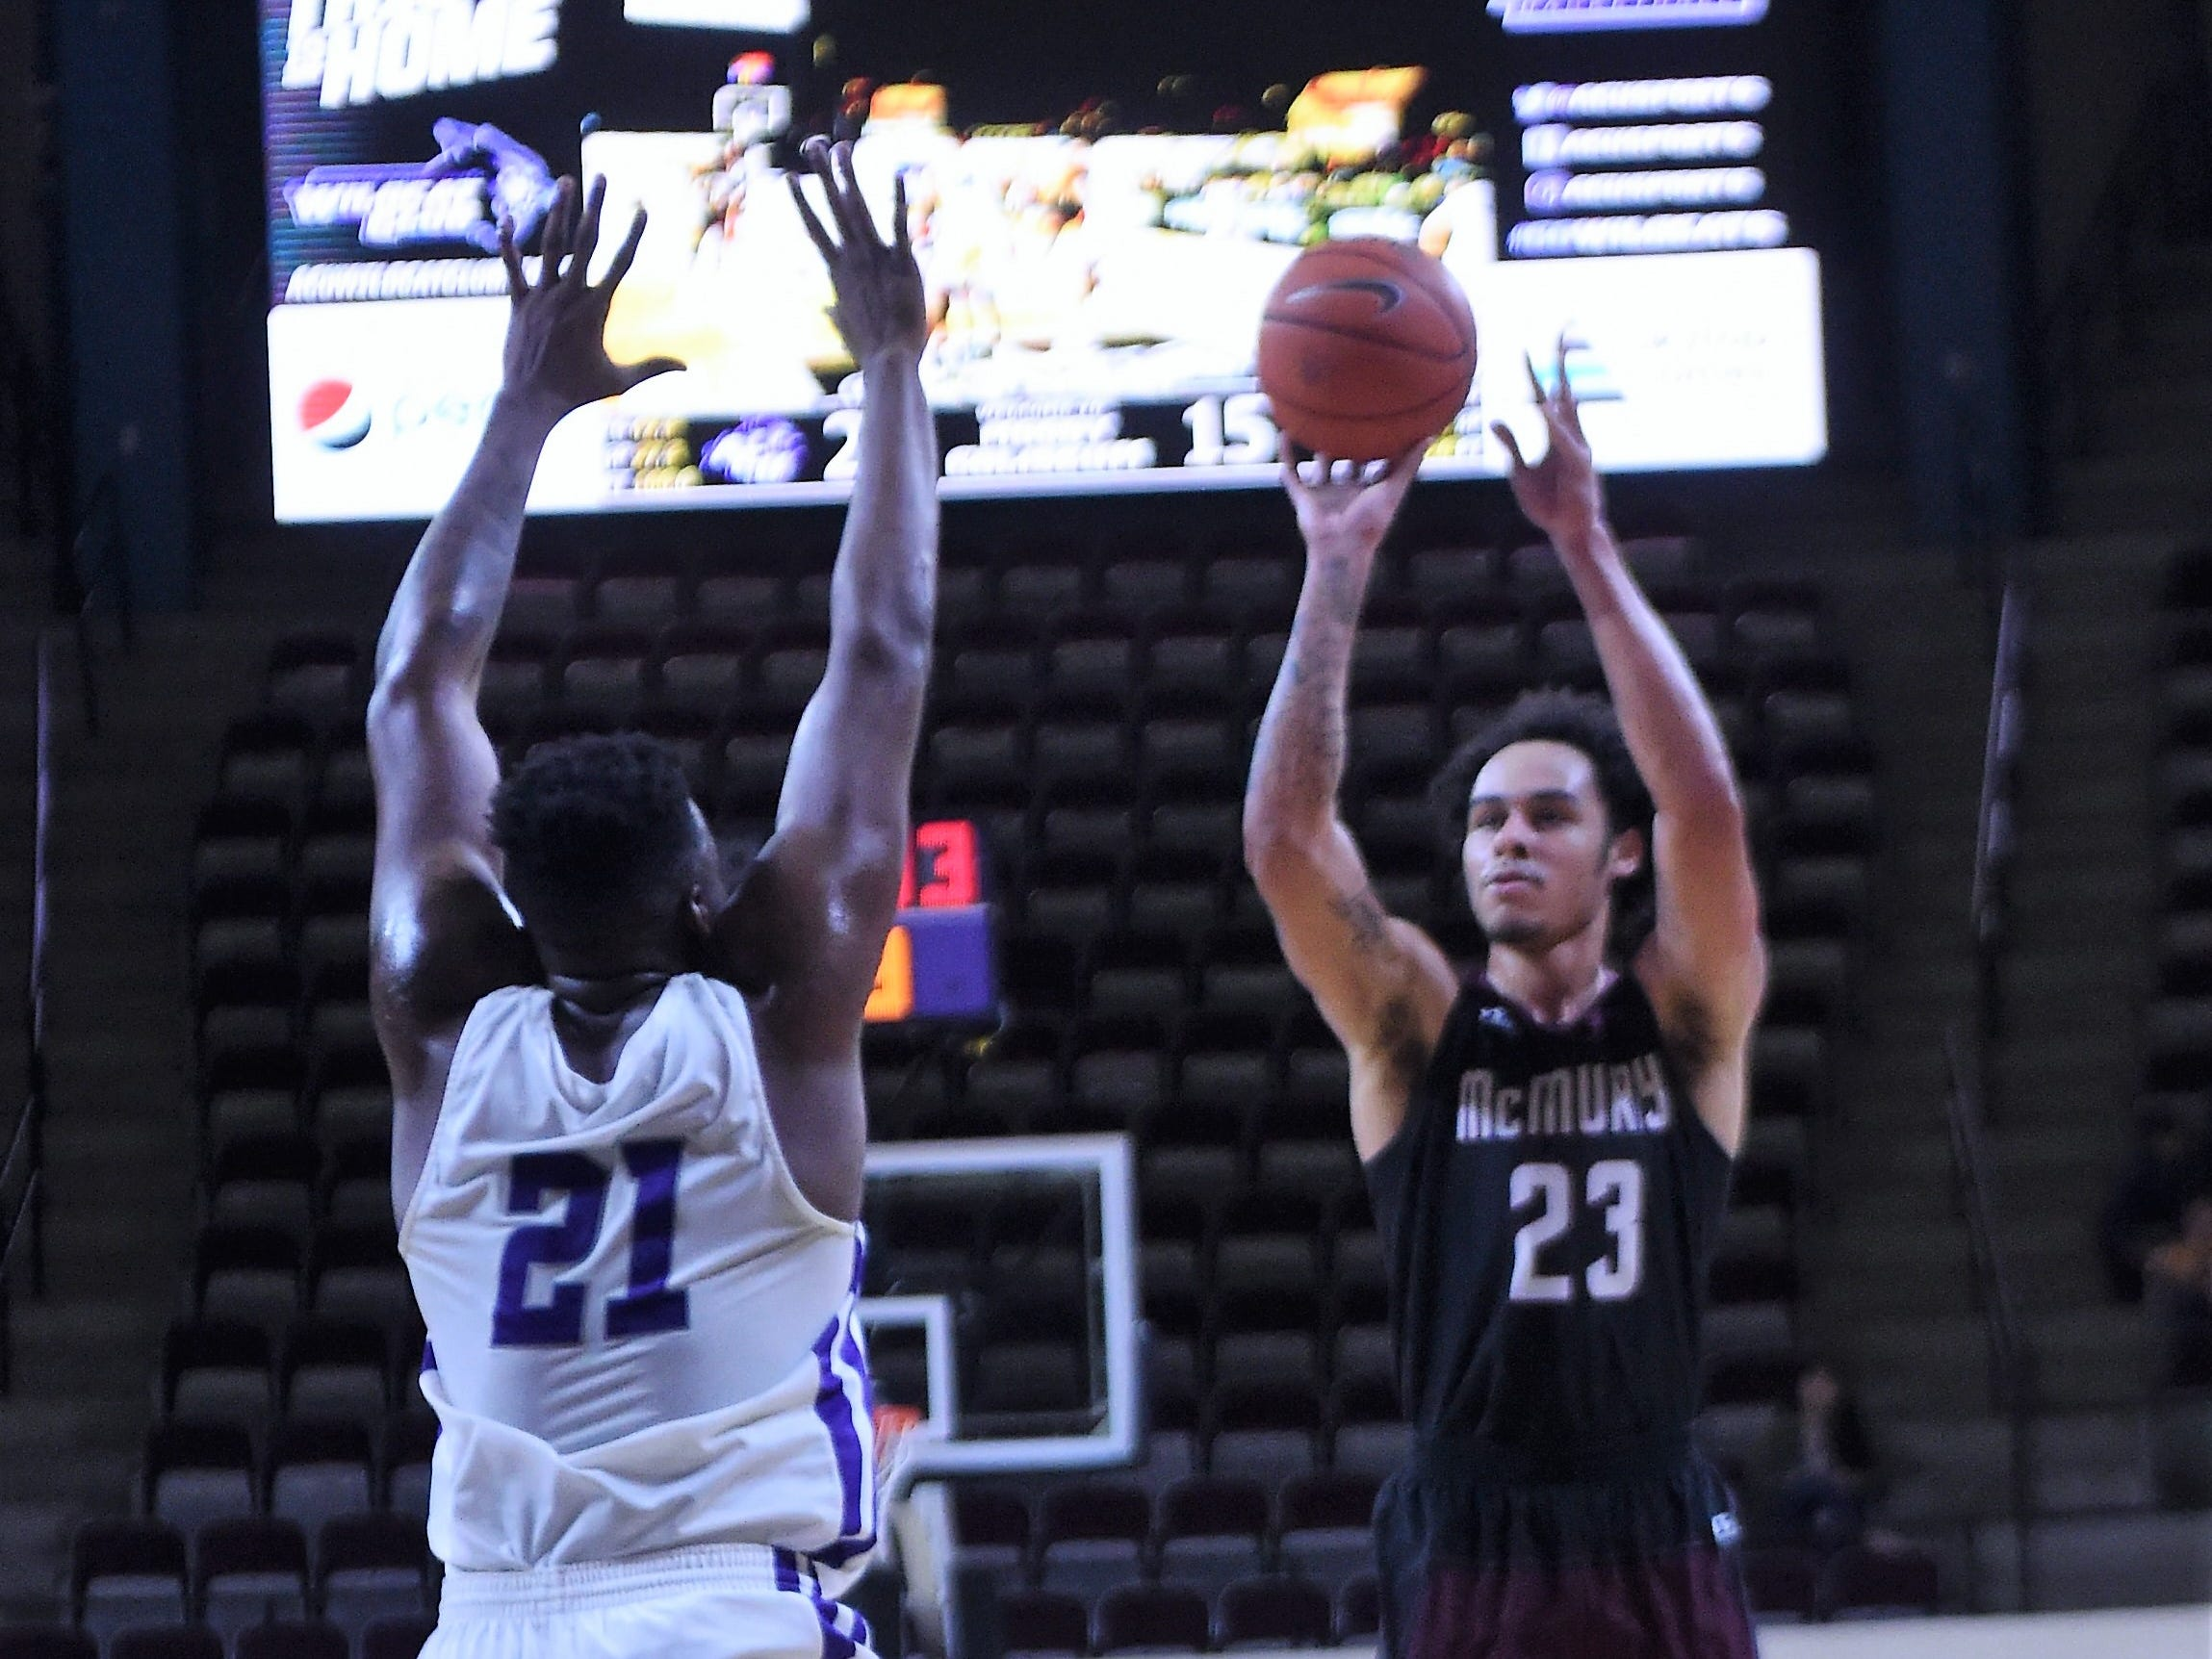 McMurry's Jordan Jackson (23) takes a shot over ACU's Jalone Friday (21) during Saturday's game at Moody Coliseum.